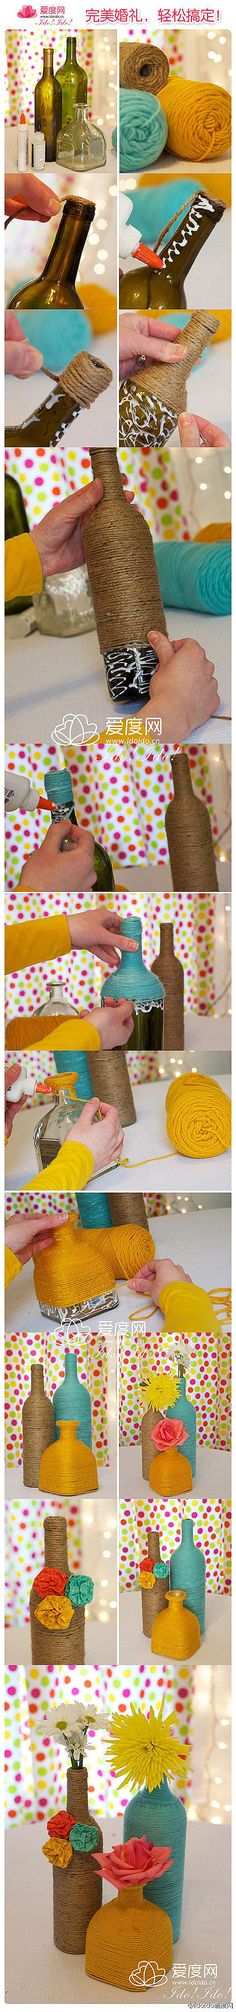 #diy# Easy Diy Crafts, Decor Crafts, Home Crafts, Diy Home Decor, Yarn Bottles, Glass Bottles, Twine Bottles, Recycle Bottles, Liquor Bottles